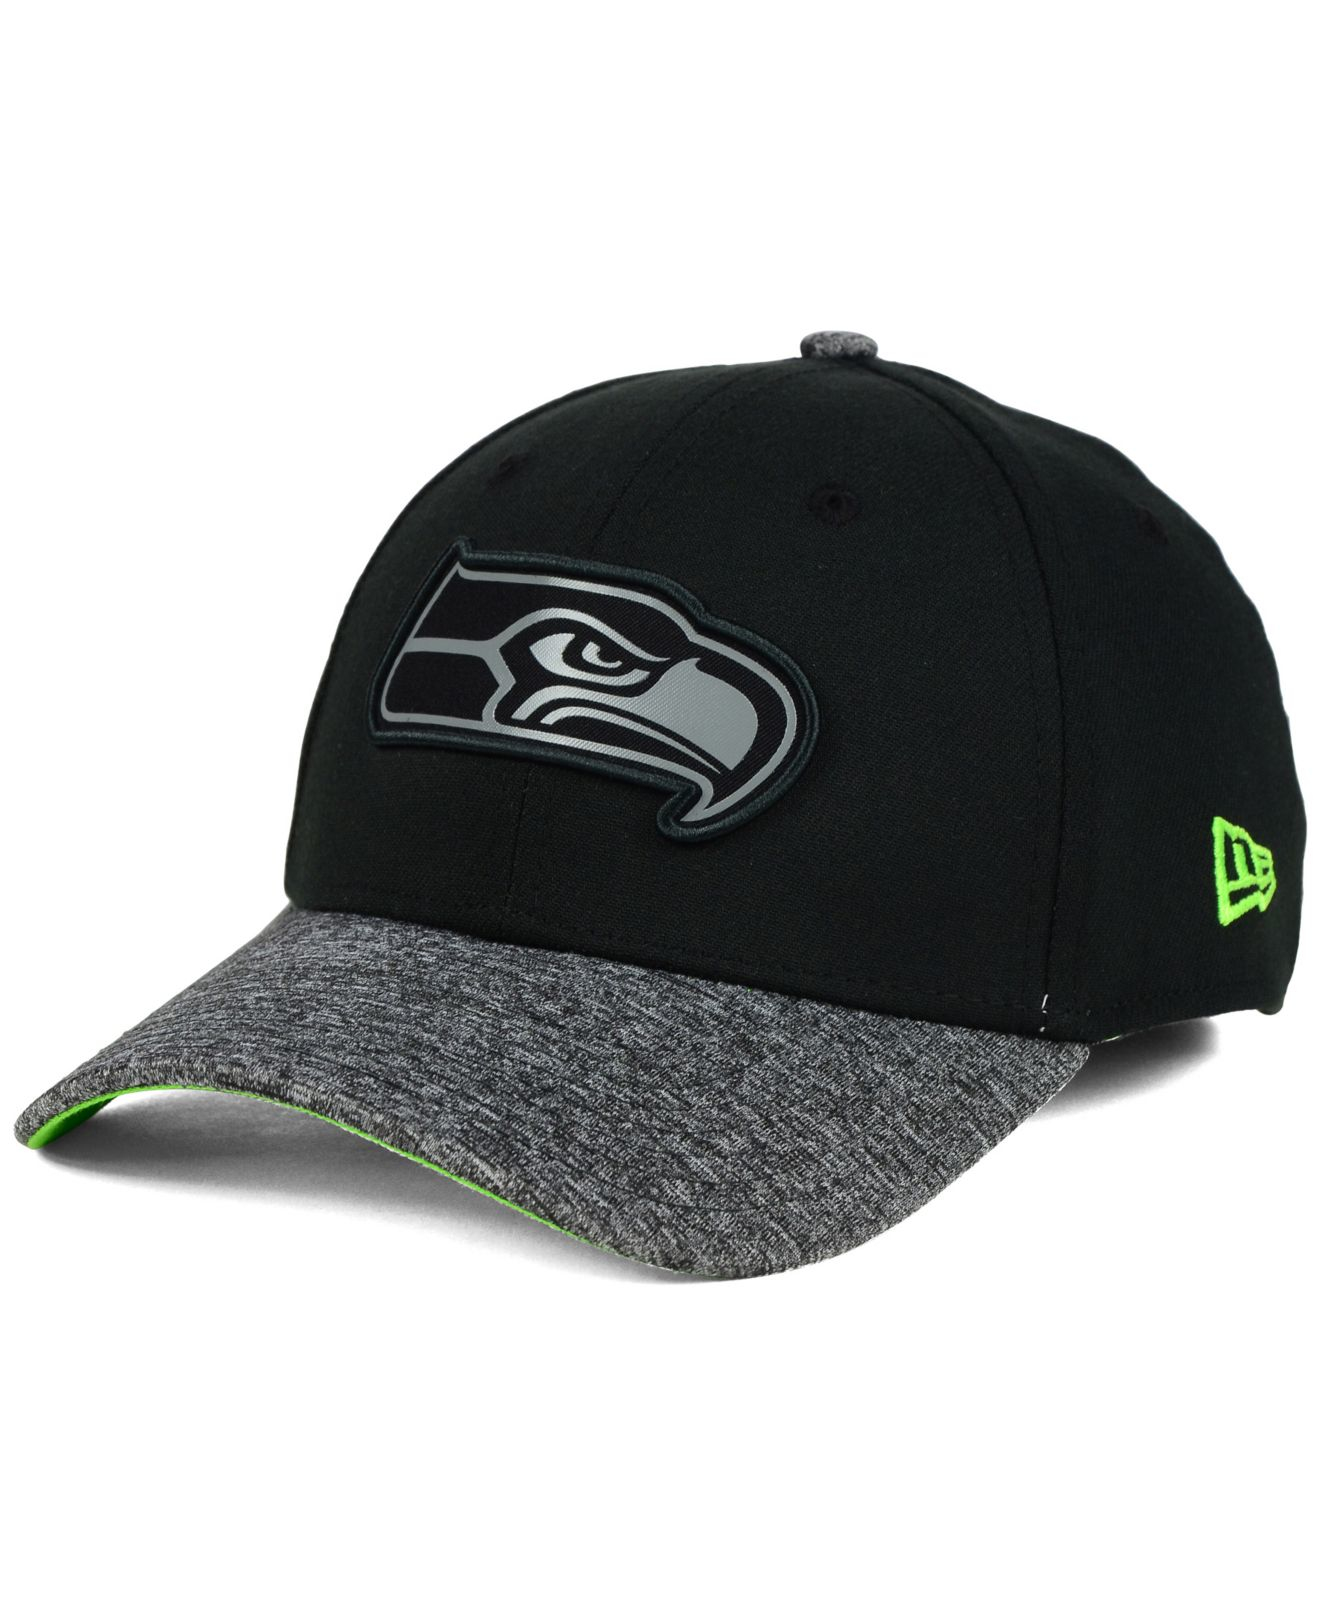 ... official store lyst ktz seattle seahawks gridiron 39thirty cap in black  for men 3f6f9 ade27 ... 65d2dece52e2